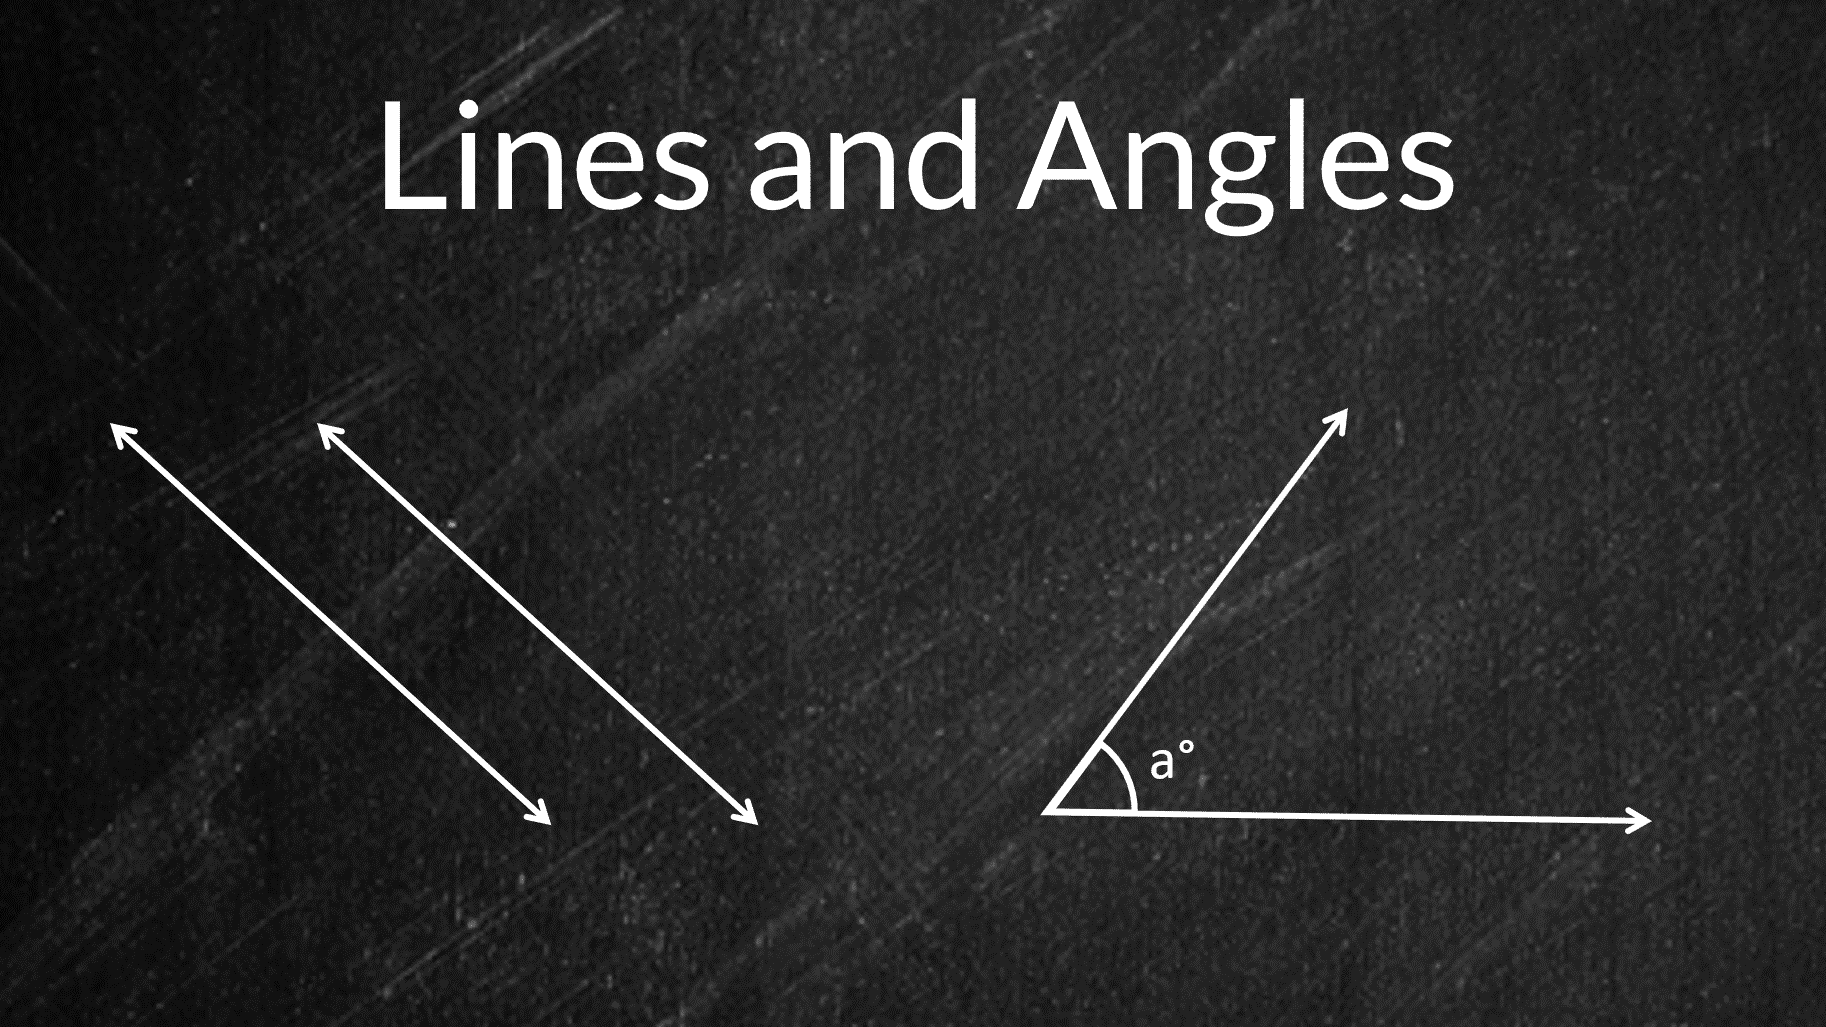 Angles relationship and between lines Types of